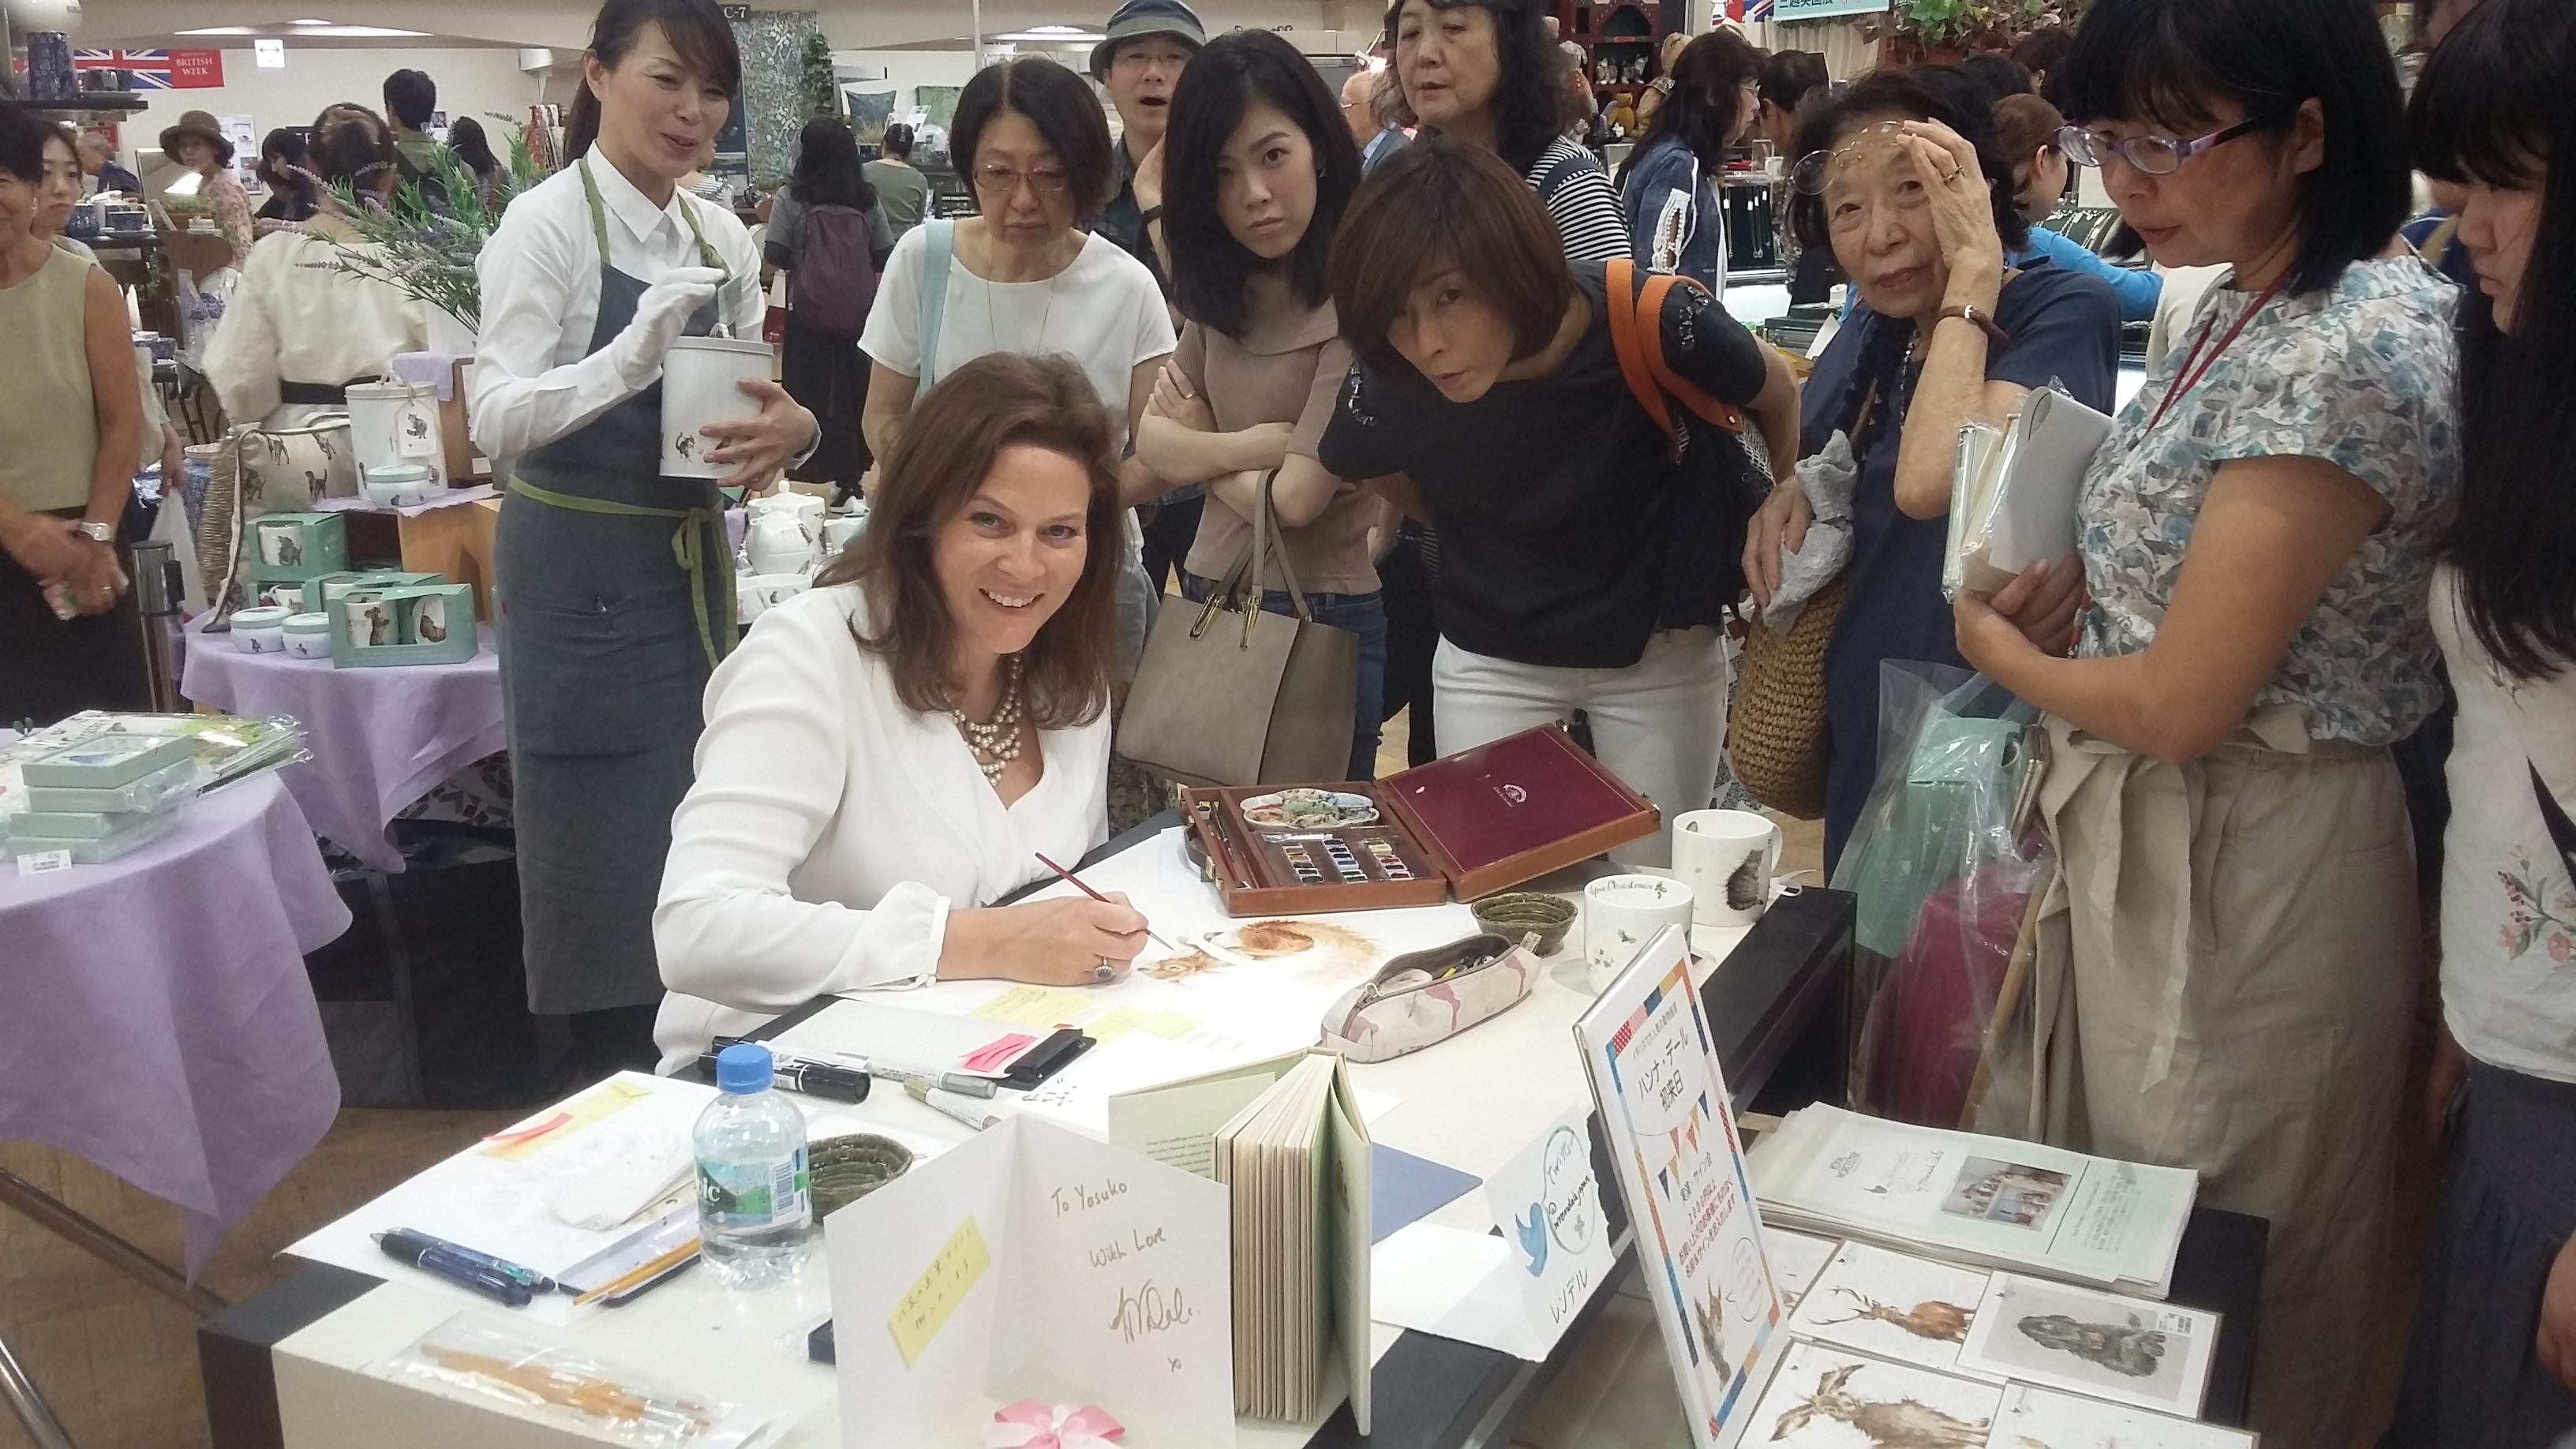 Above: Hannah painting in a Japanese department store as part of its British Week activities.